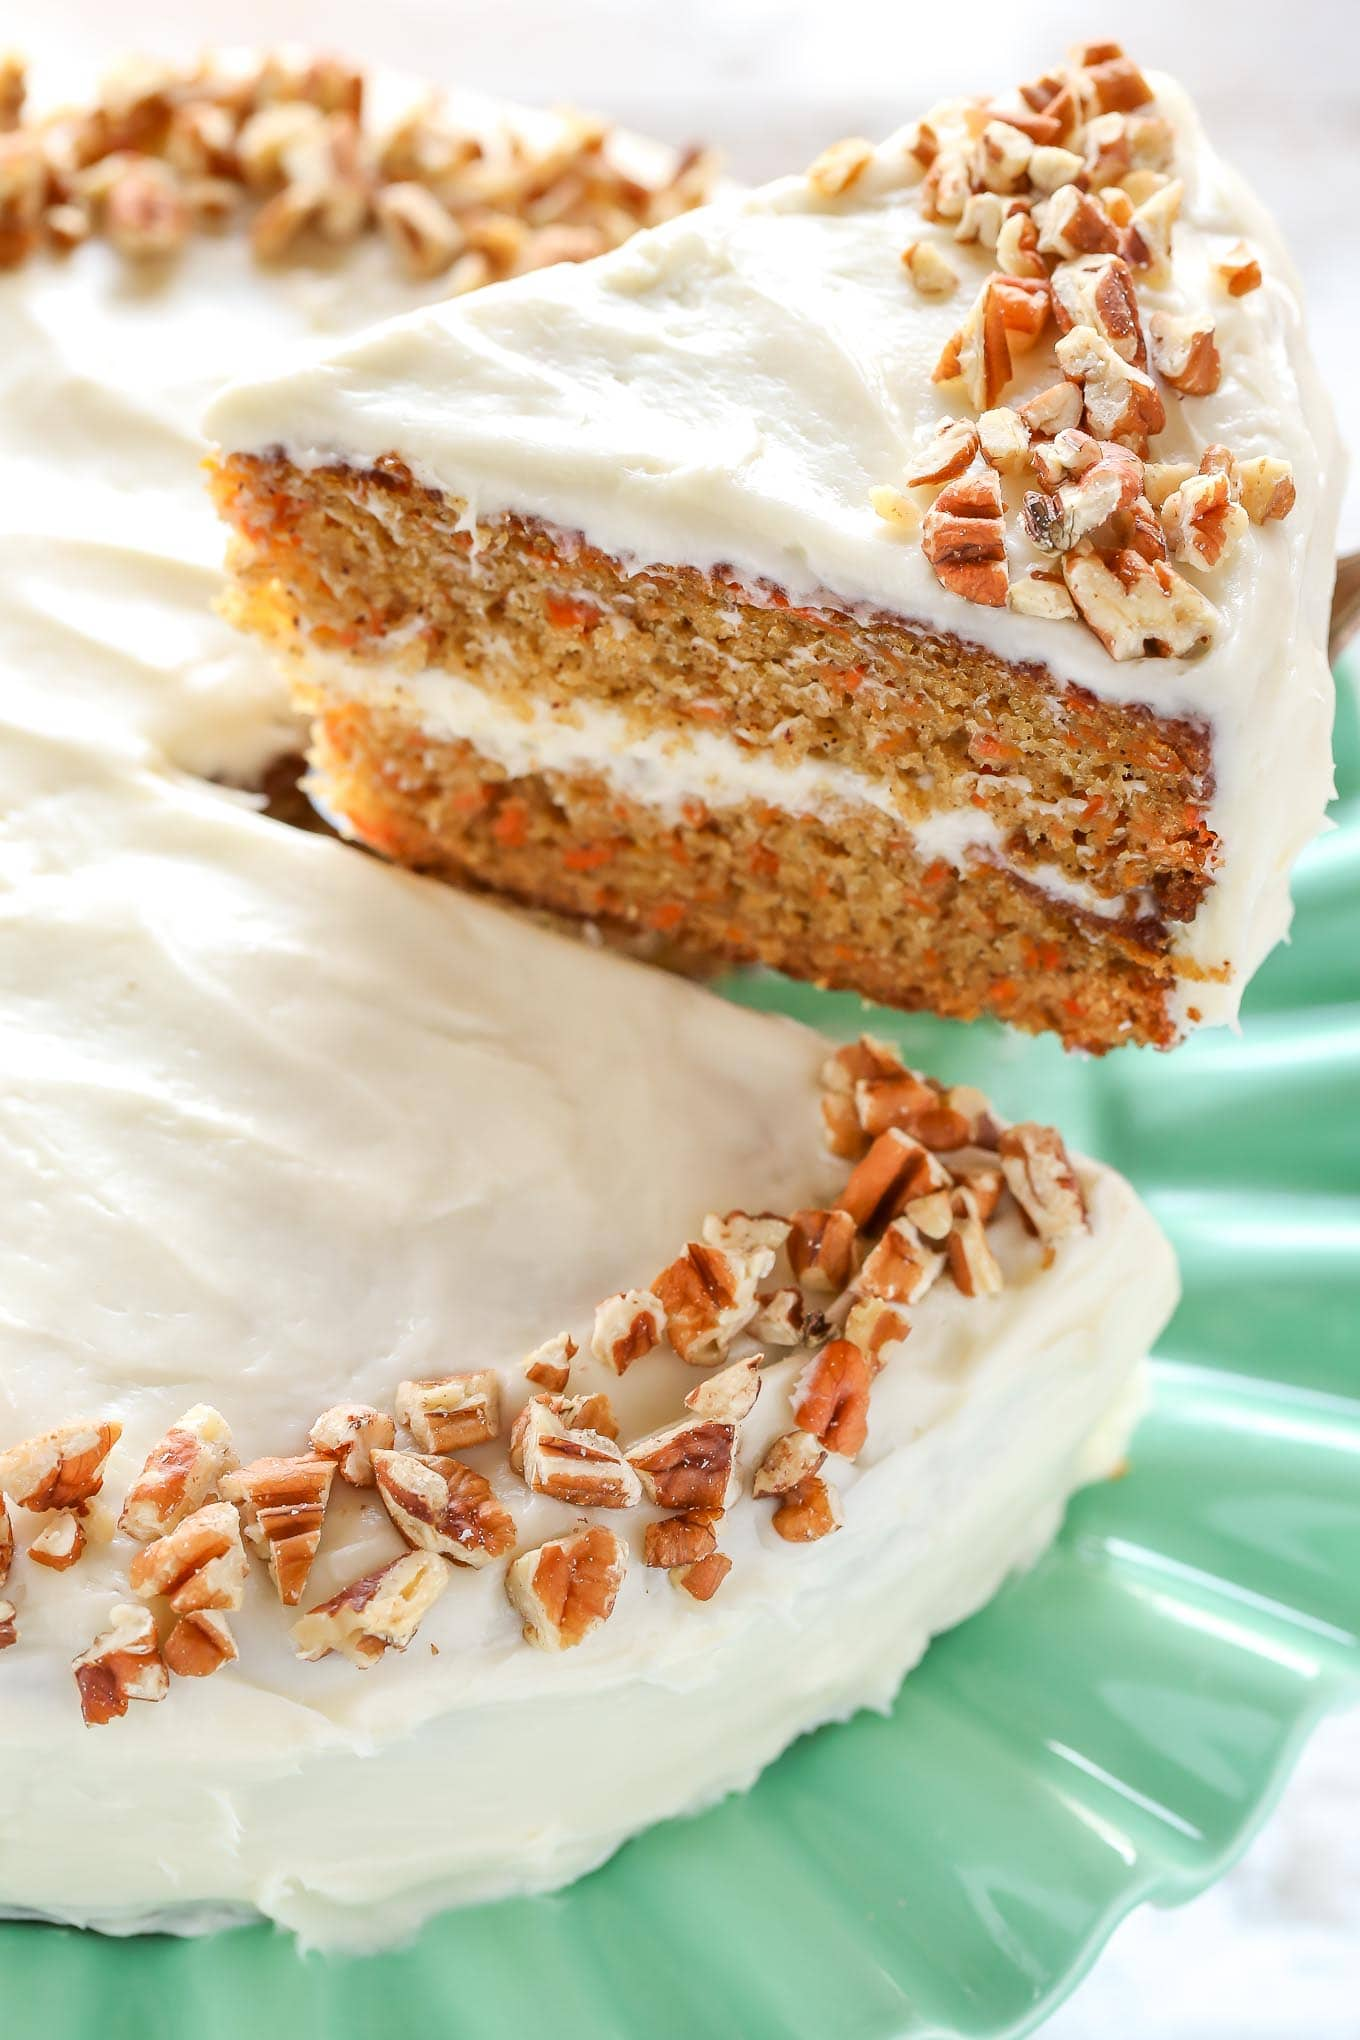 My Carrot Cake Is Too Wet